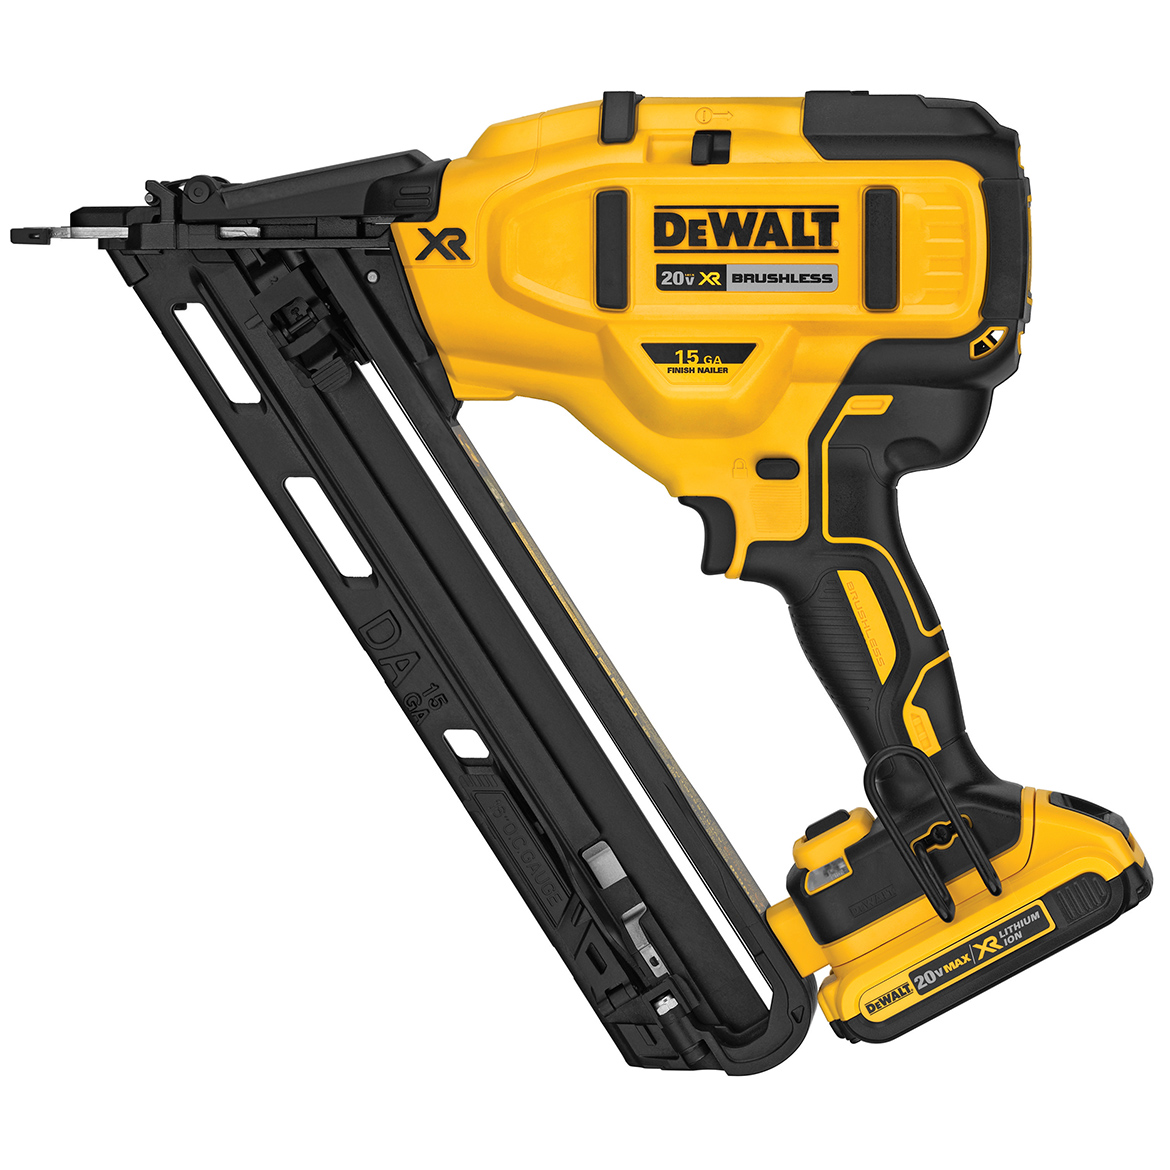 Details About Dewalt Dcn650d1 20 Volt 15 Gauge Cordless Angled Finish Nailer Kit